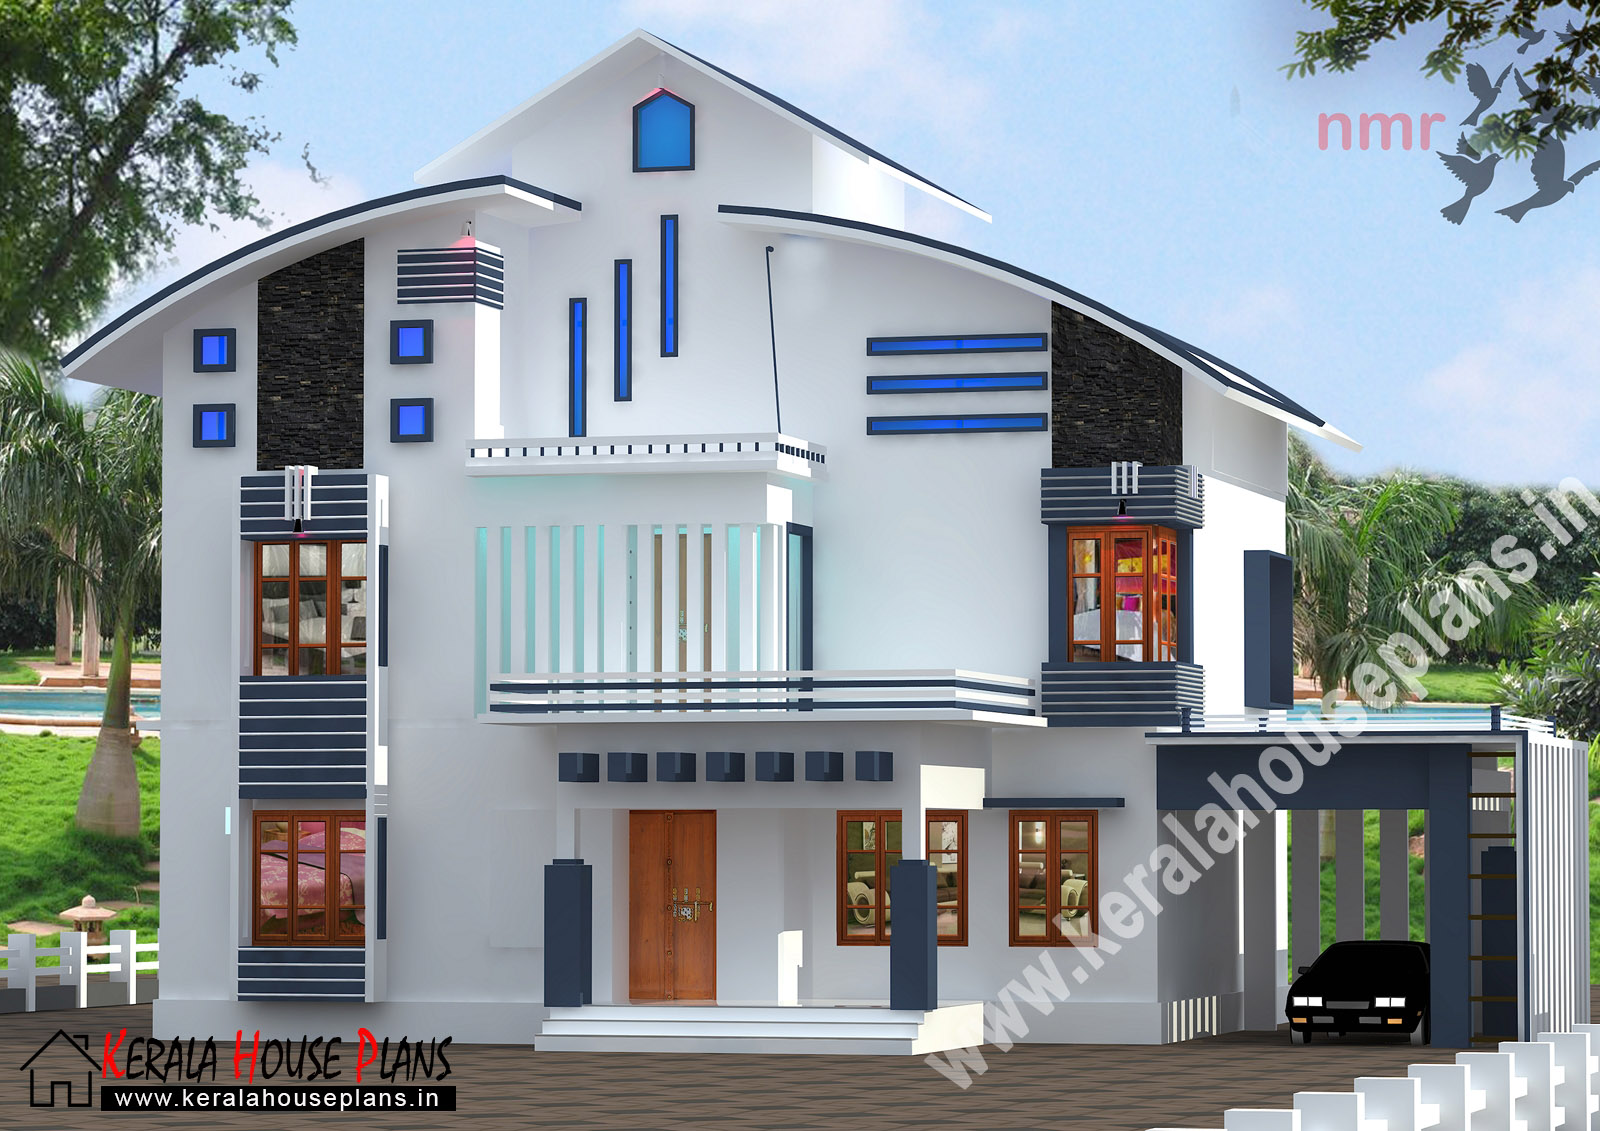 New kerala house plans for Kerala new home pictures